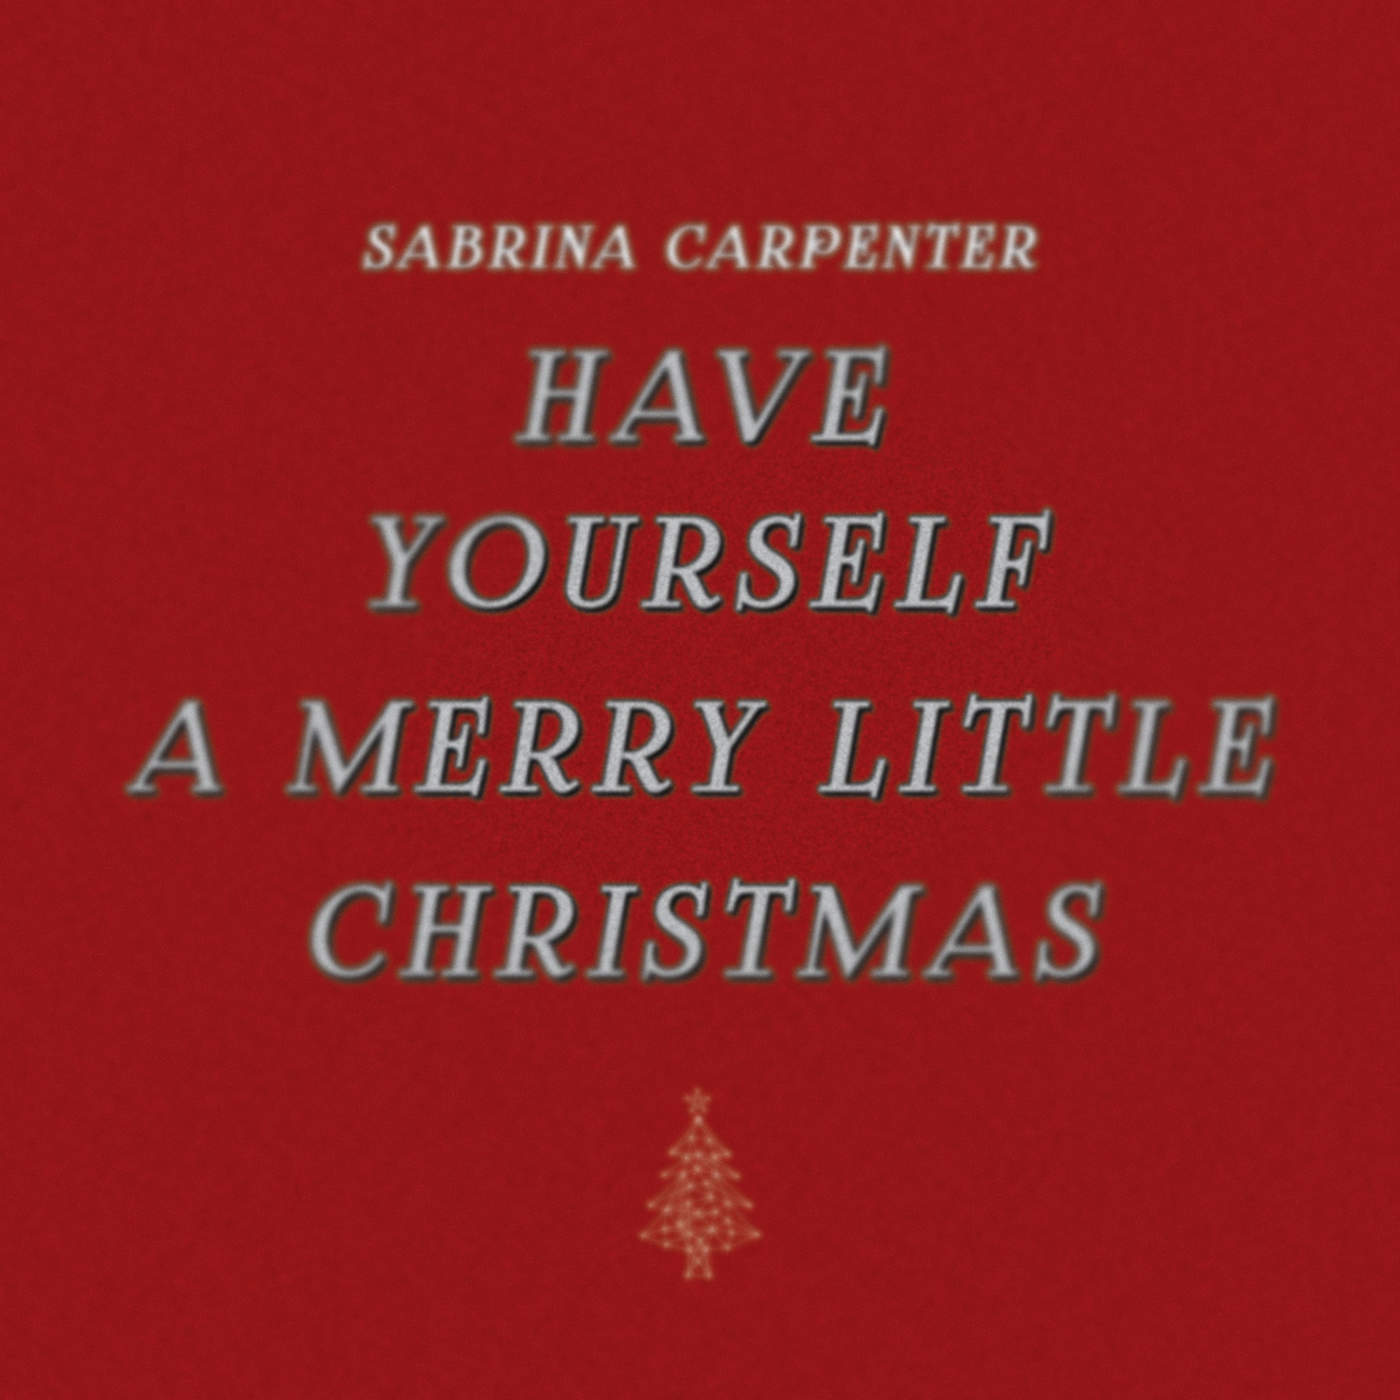 Sabrina Carpenter - Have Yourself a Merry Little Christmas - Single